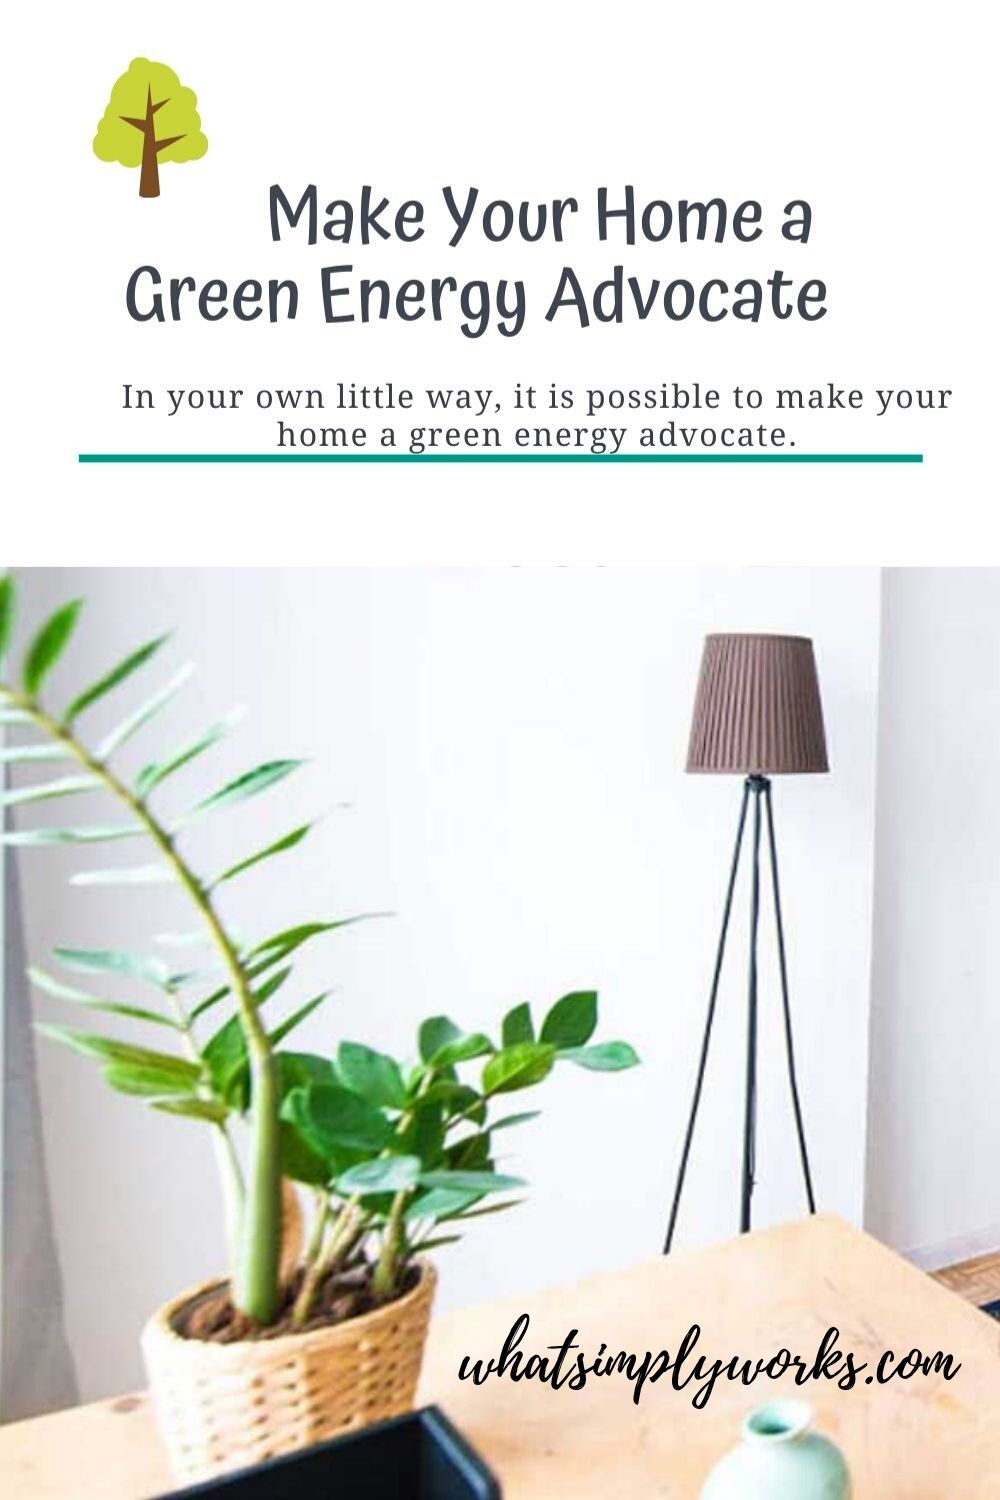 You don't have to be part of an institution or a group of green advocates just to go green. You can do it in your own little way, it is possible to make your home a green energy advocate.